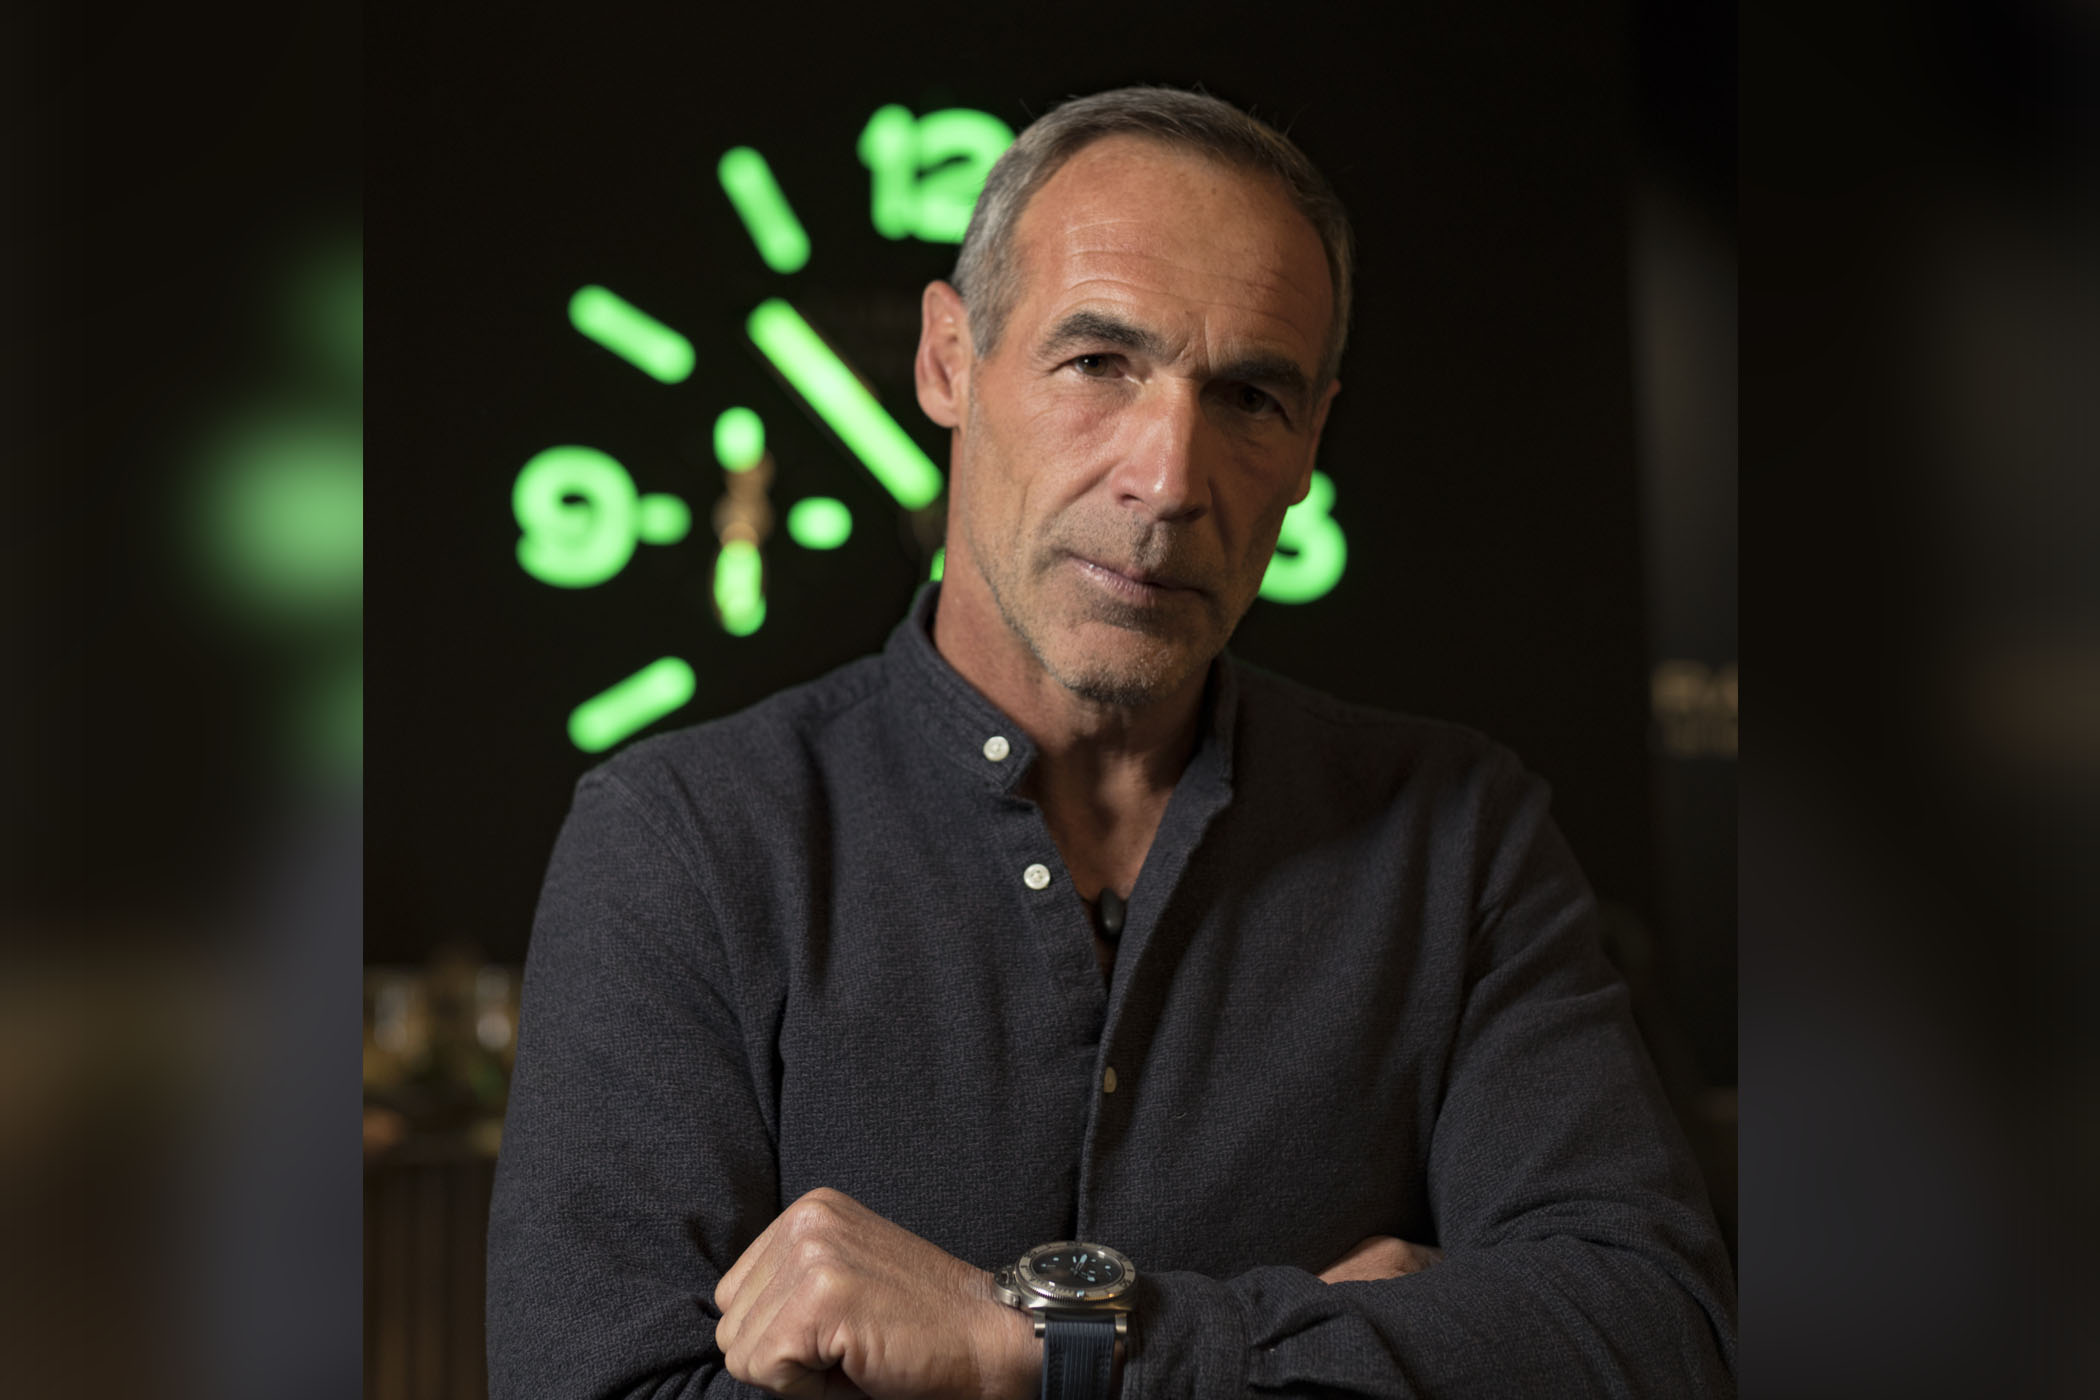 Monochrome Watches:   Interview In Conversation with Mike Horn, Explorer & Panerai Ambassador, during SIHH 2019